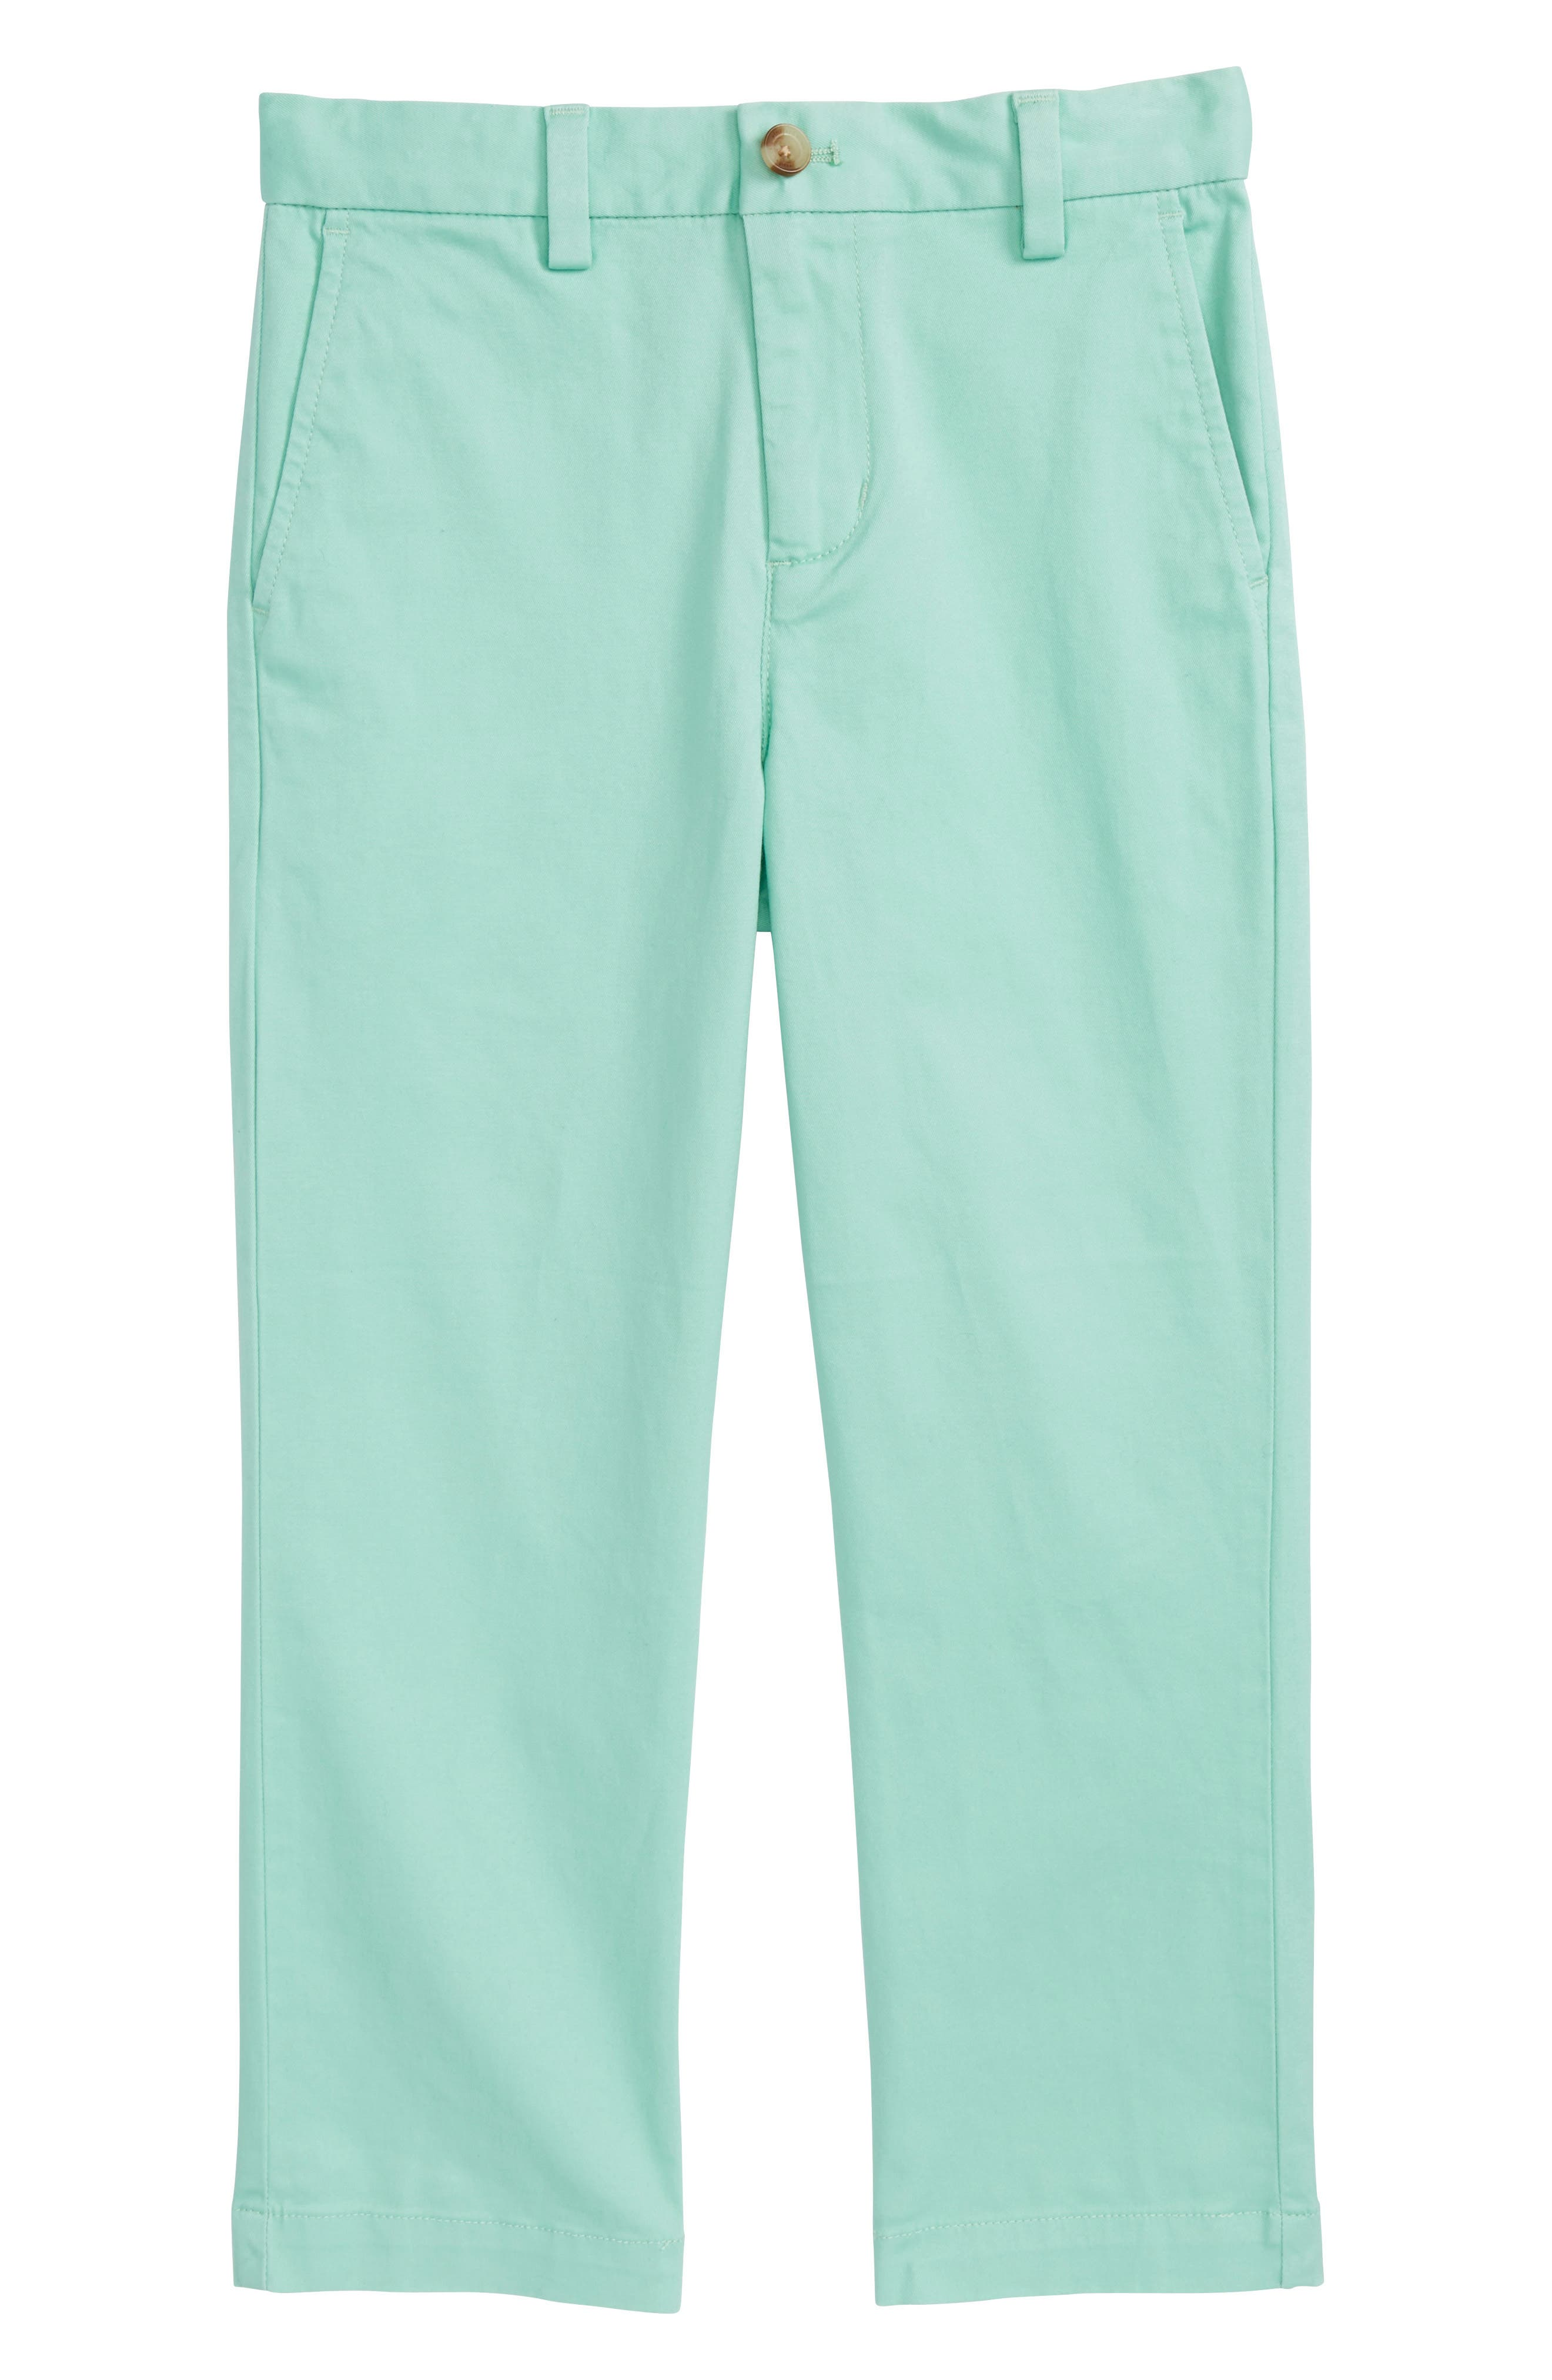 vineyard vines Stretch Breaker Pants (Big Boys)